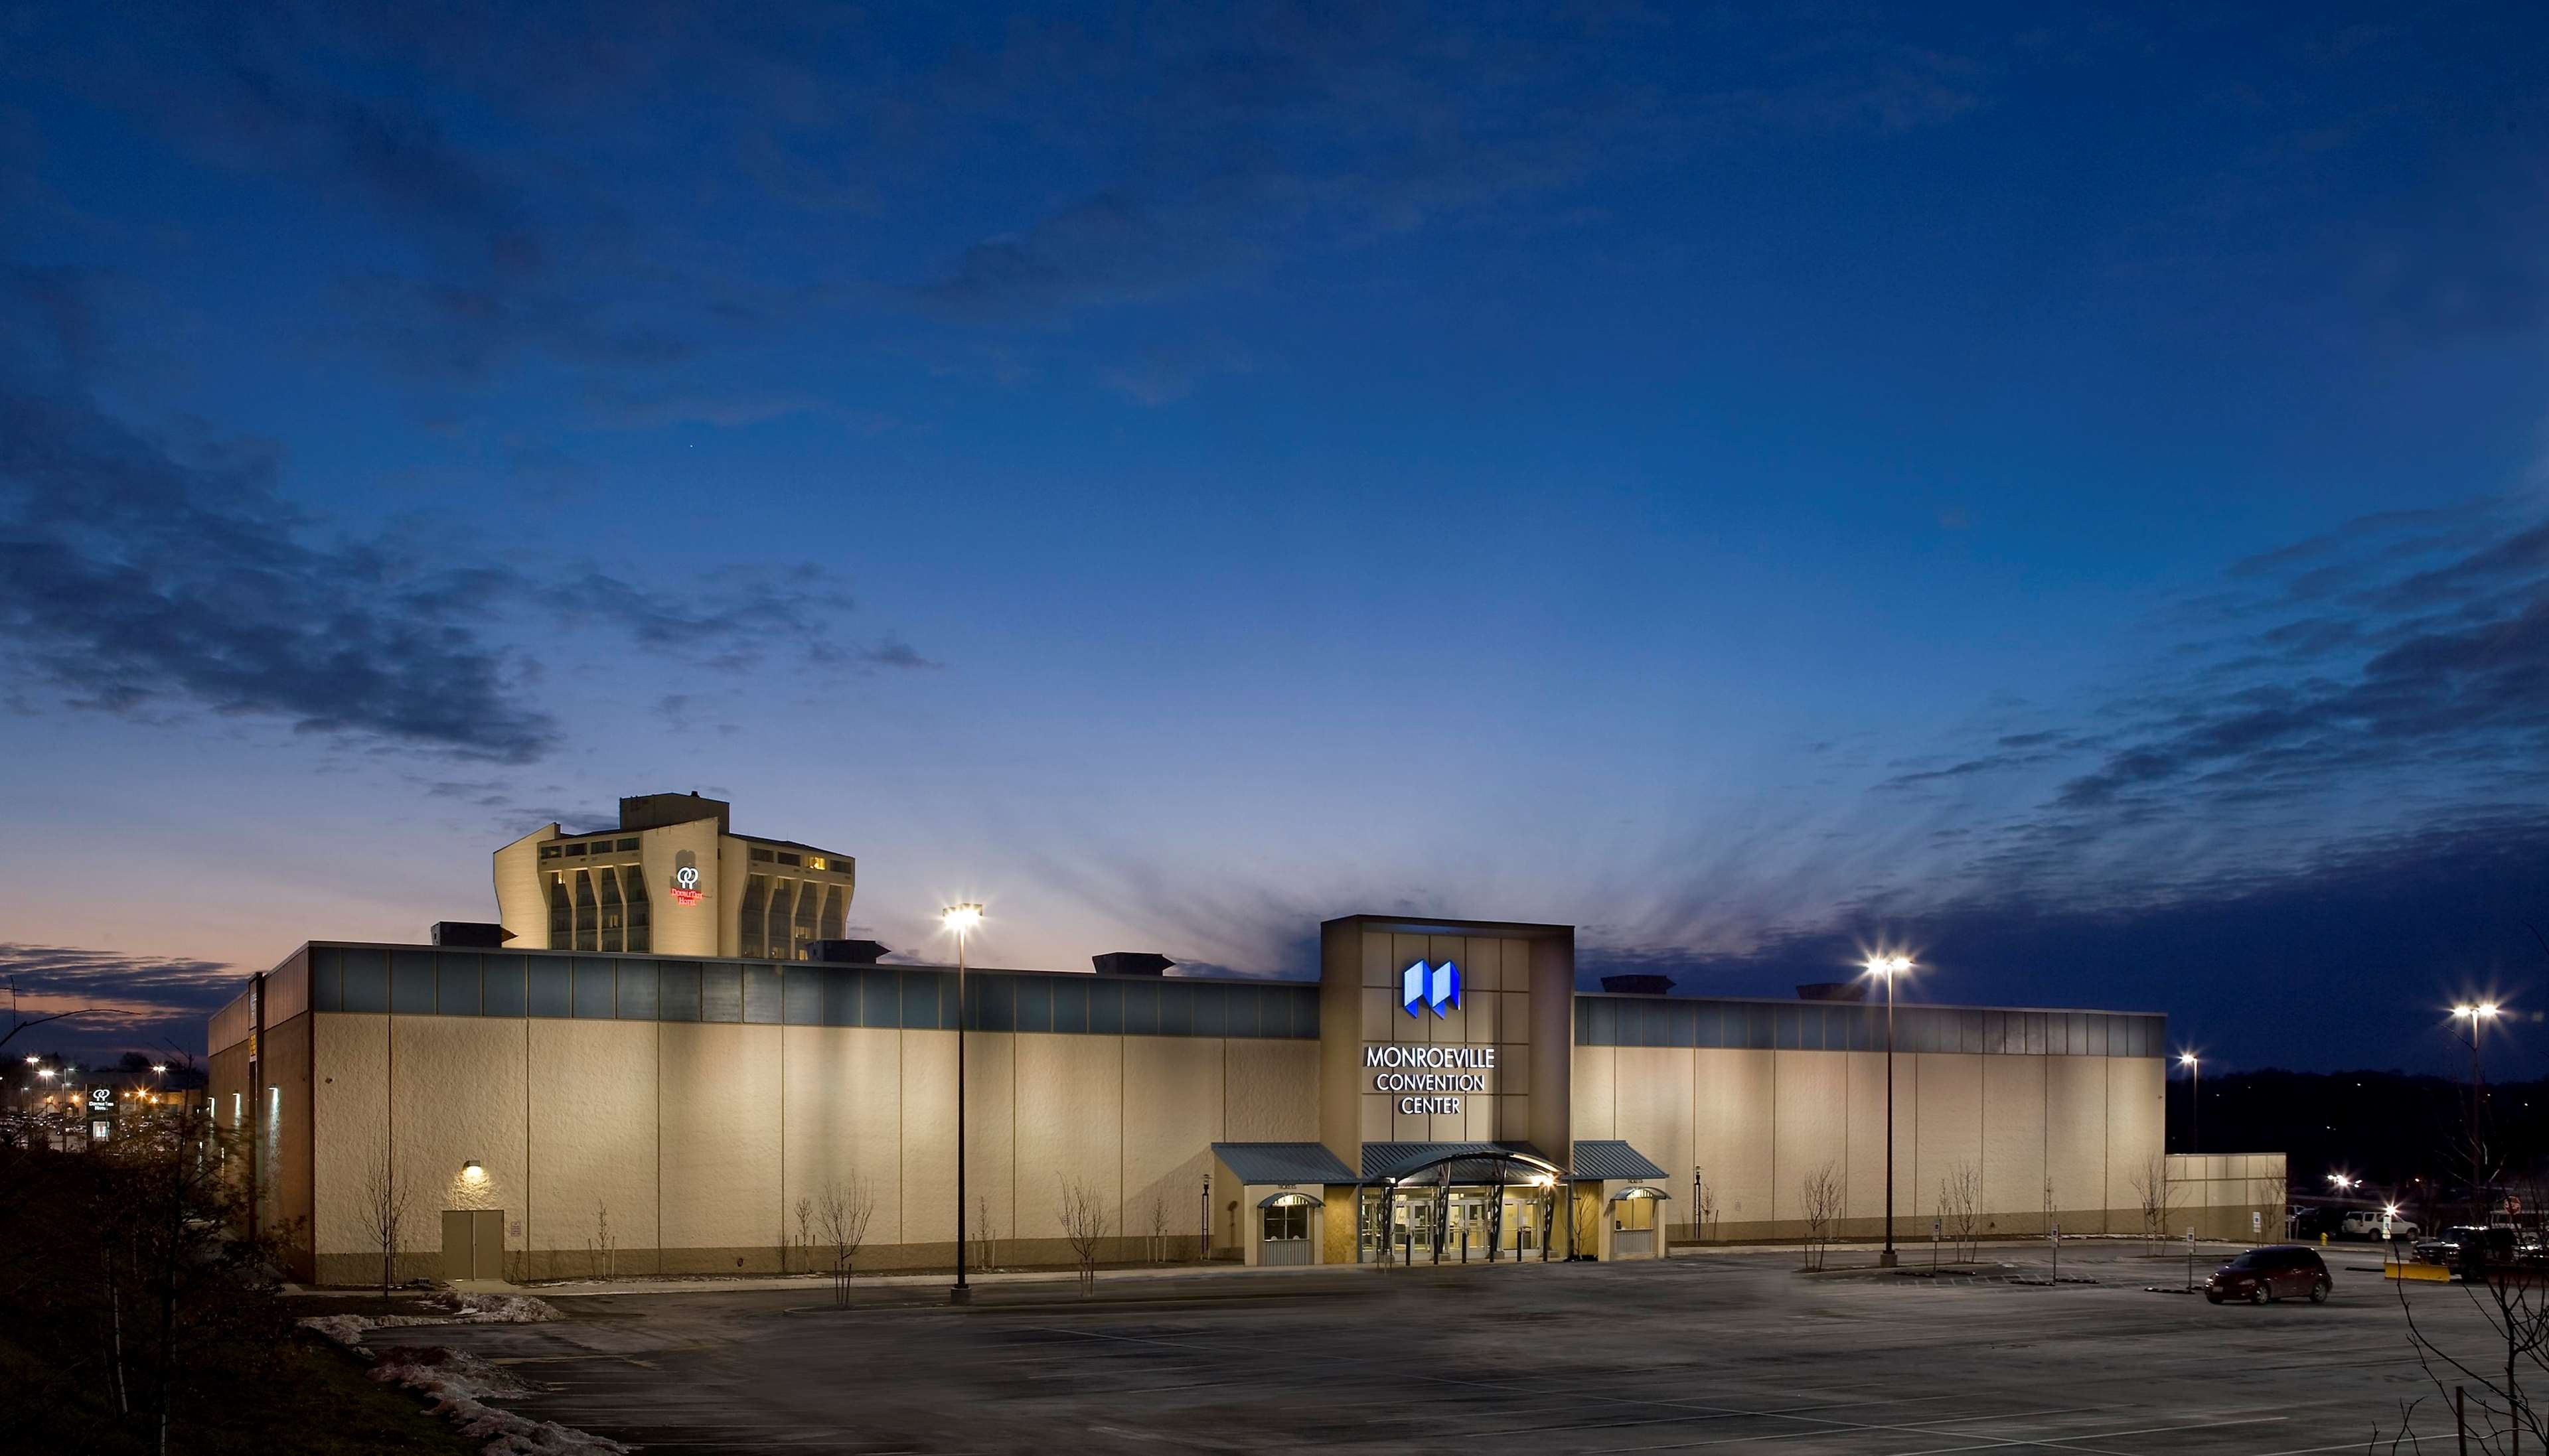 DoubleTree by Hilton Hotel Pittsburgh - Monroeville Convention Center image 3